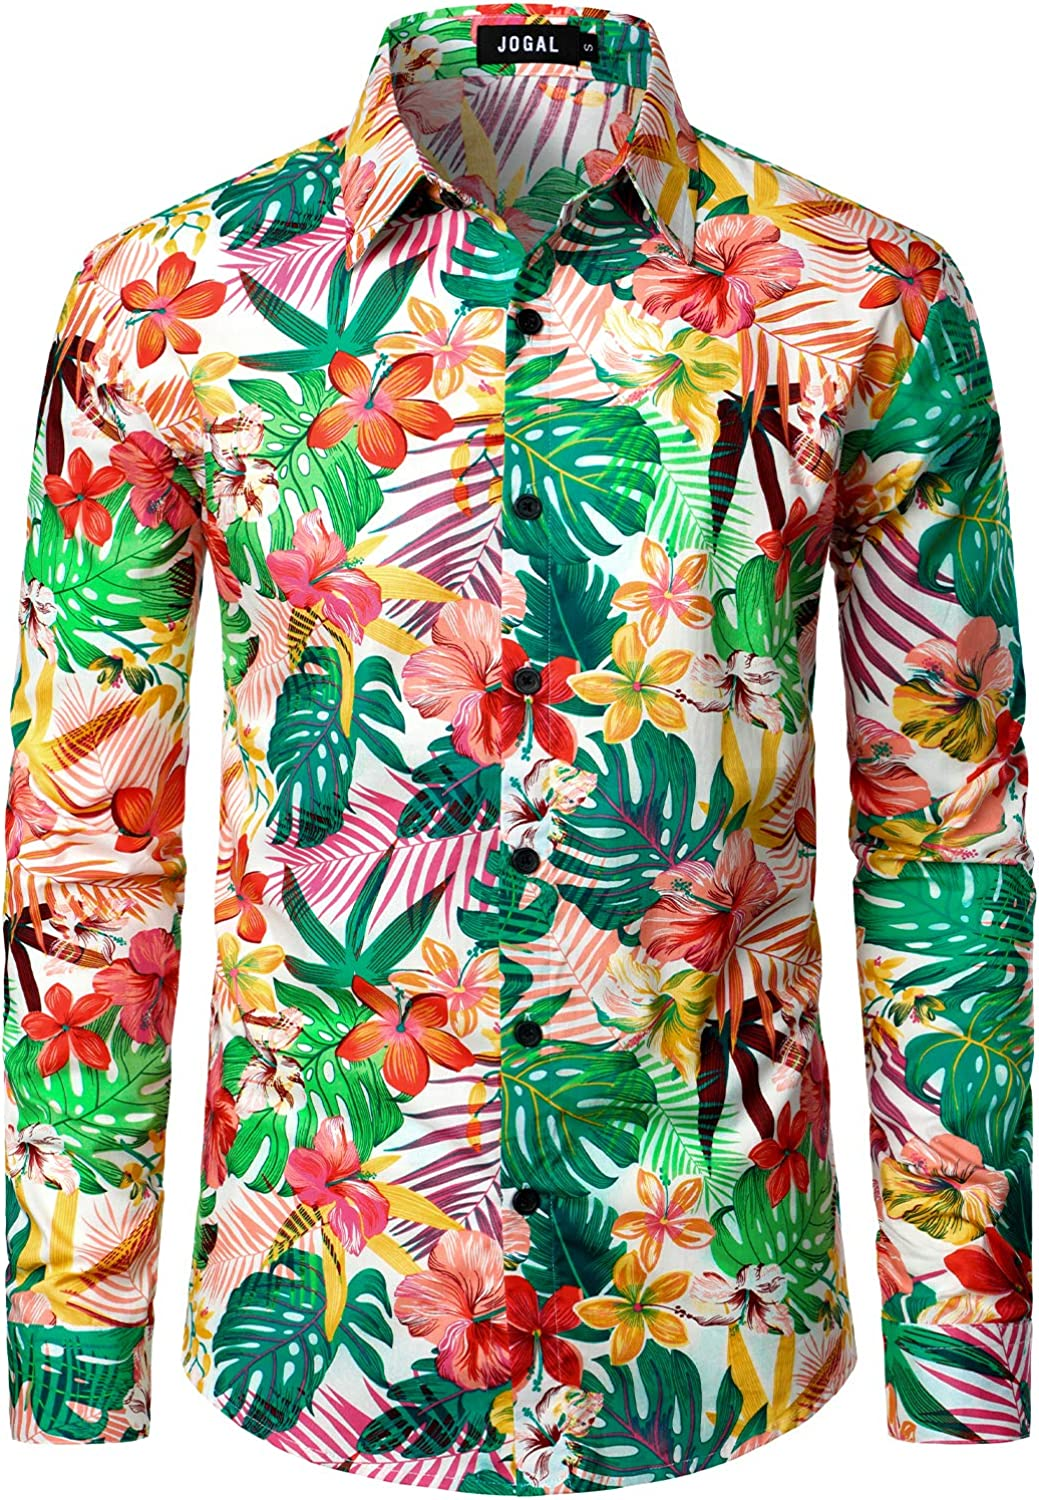 JOGAL Men's Floral Long Sleeve Casual Button Down Shirts